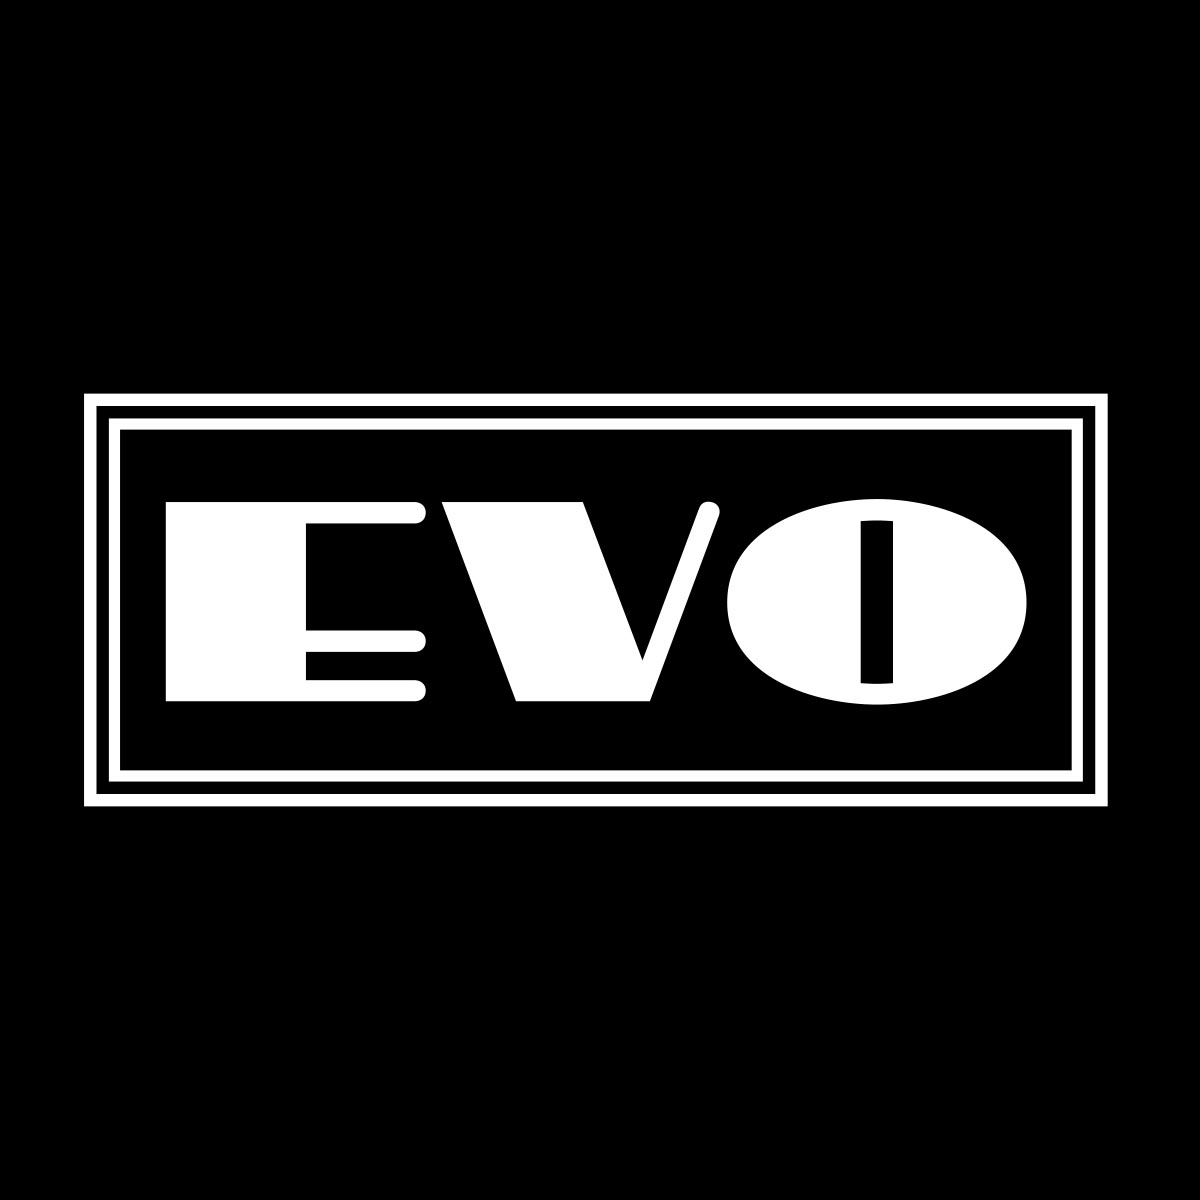 evo - If the Huevo was silly putty and you could stretch it, the Evo is what you get.